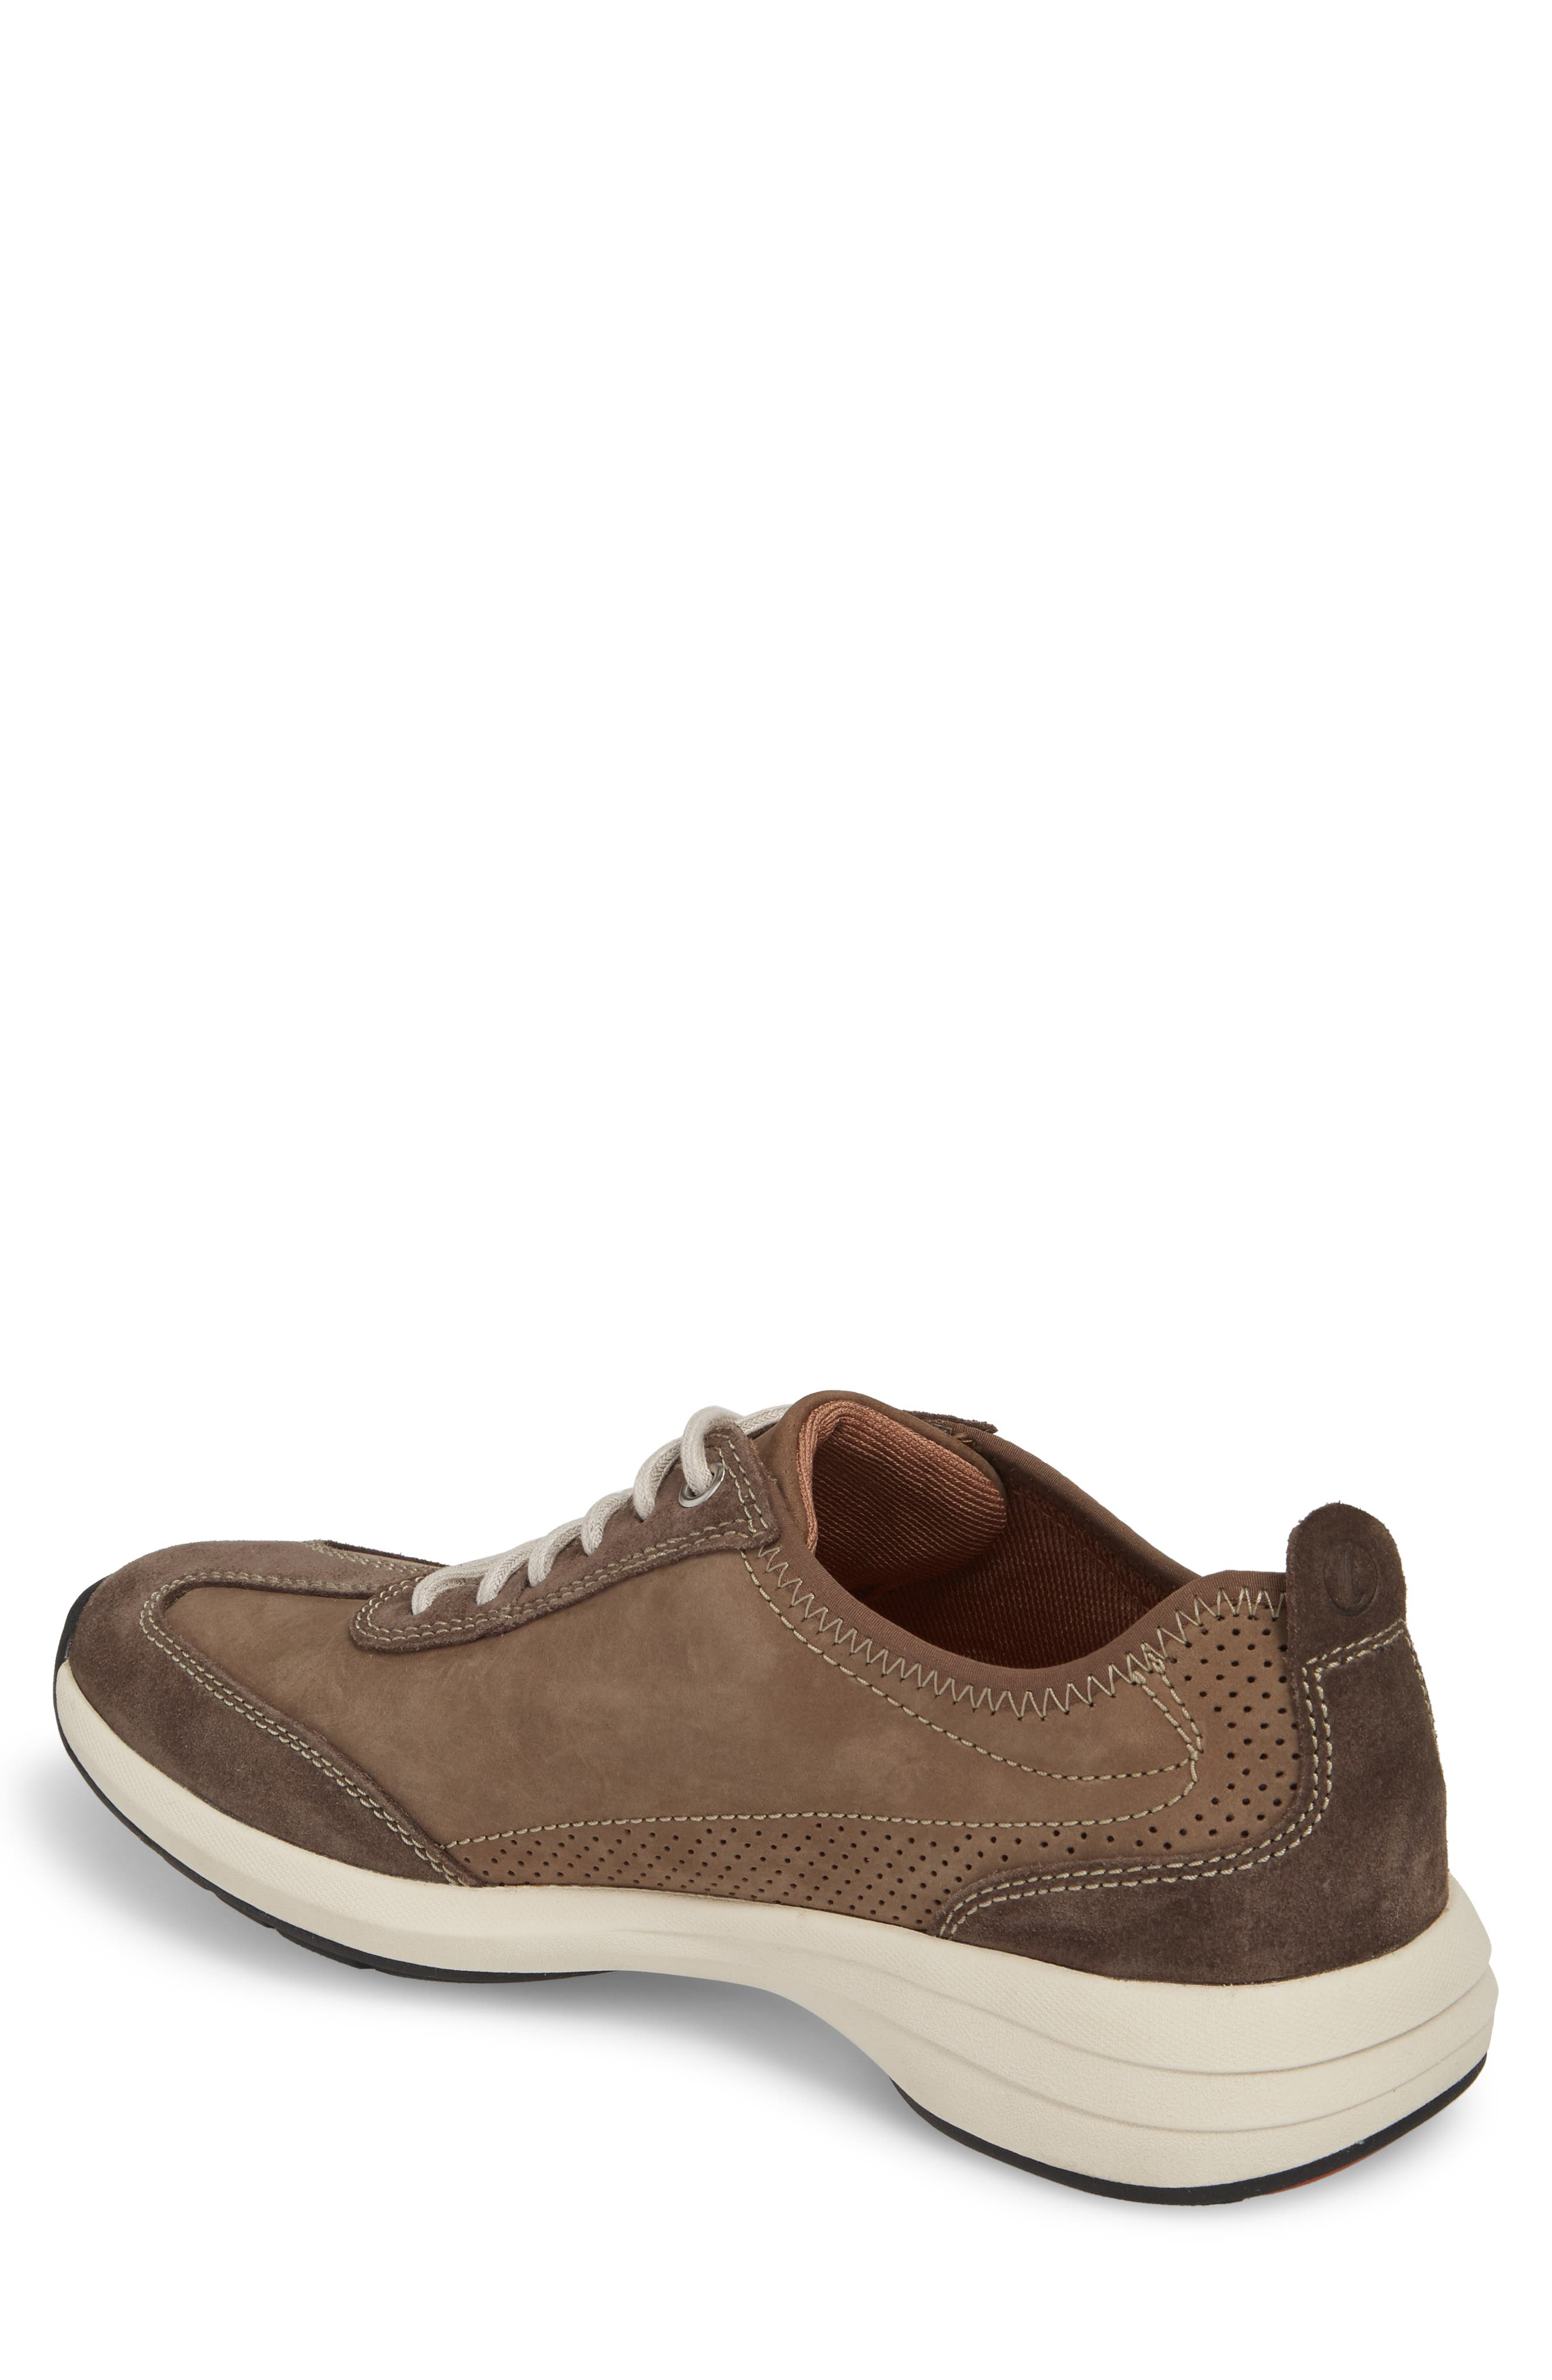 Clarks<sup>®</sup> Un Coast Low Top Sneaker,                             Alternate thumbnail 2, color,                             279